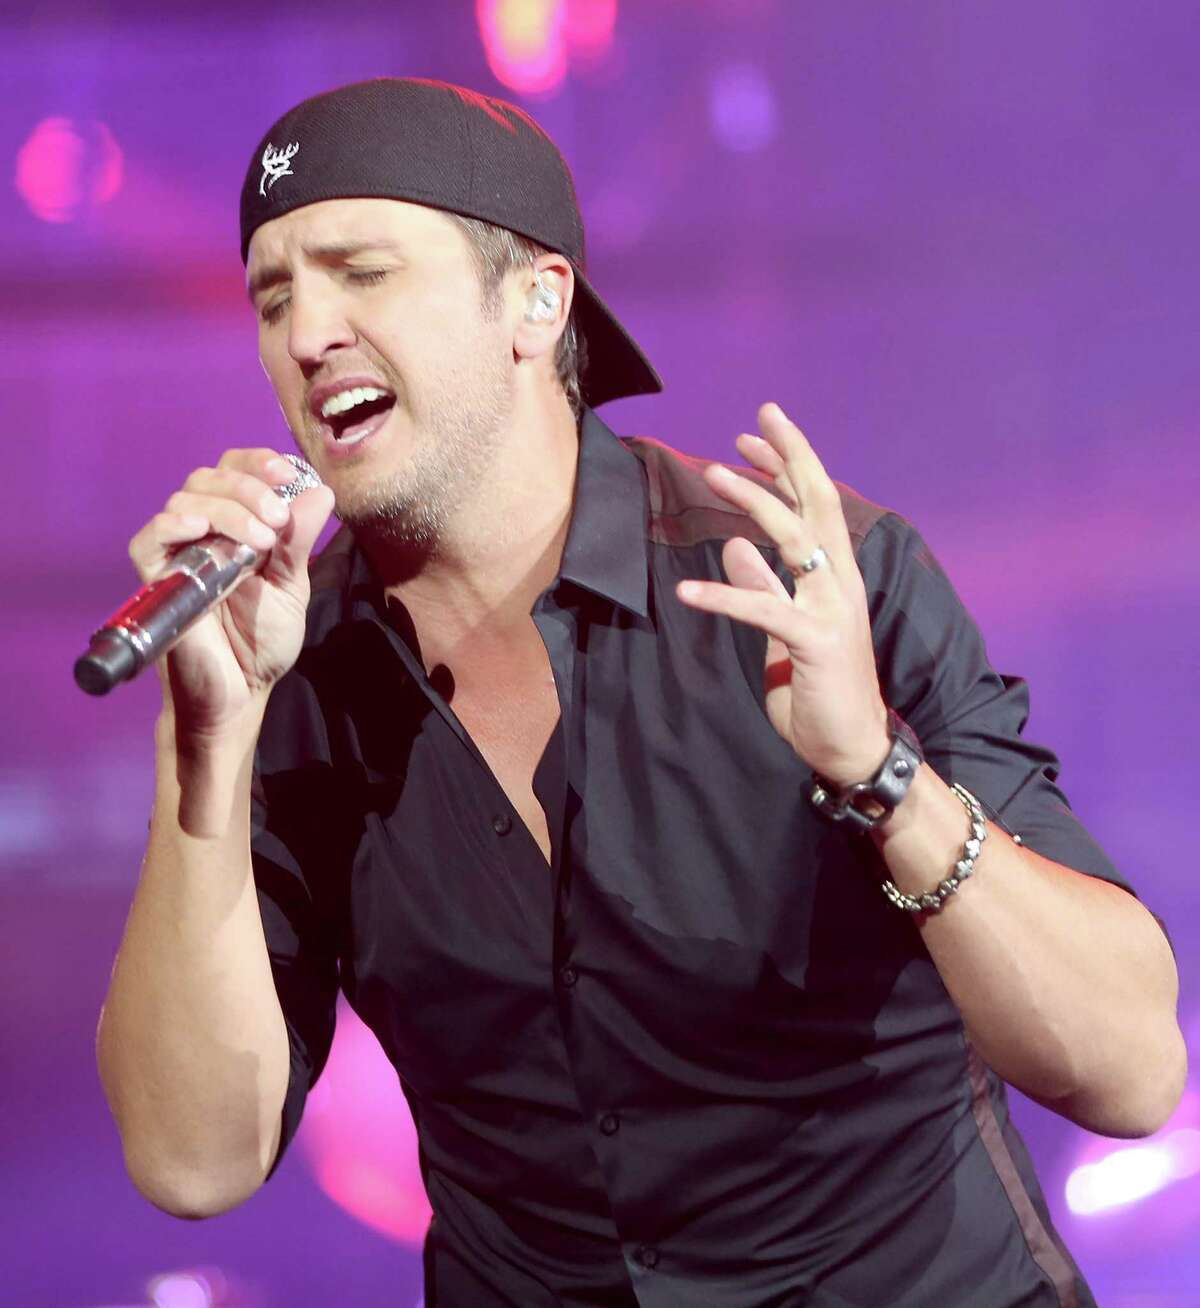 3/17/14: Country star Luke Bryan performs at the Houston Livestock Show and Rodeo in Houston, Texas.